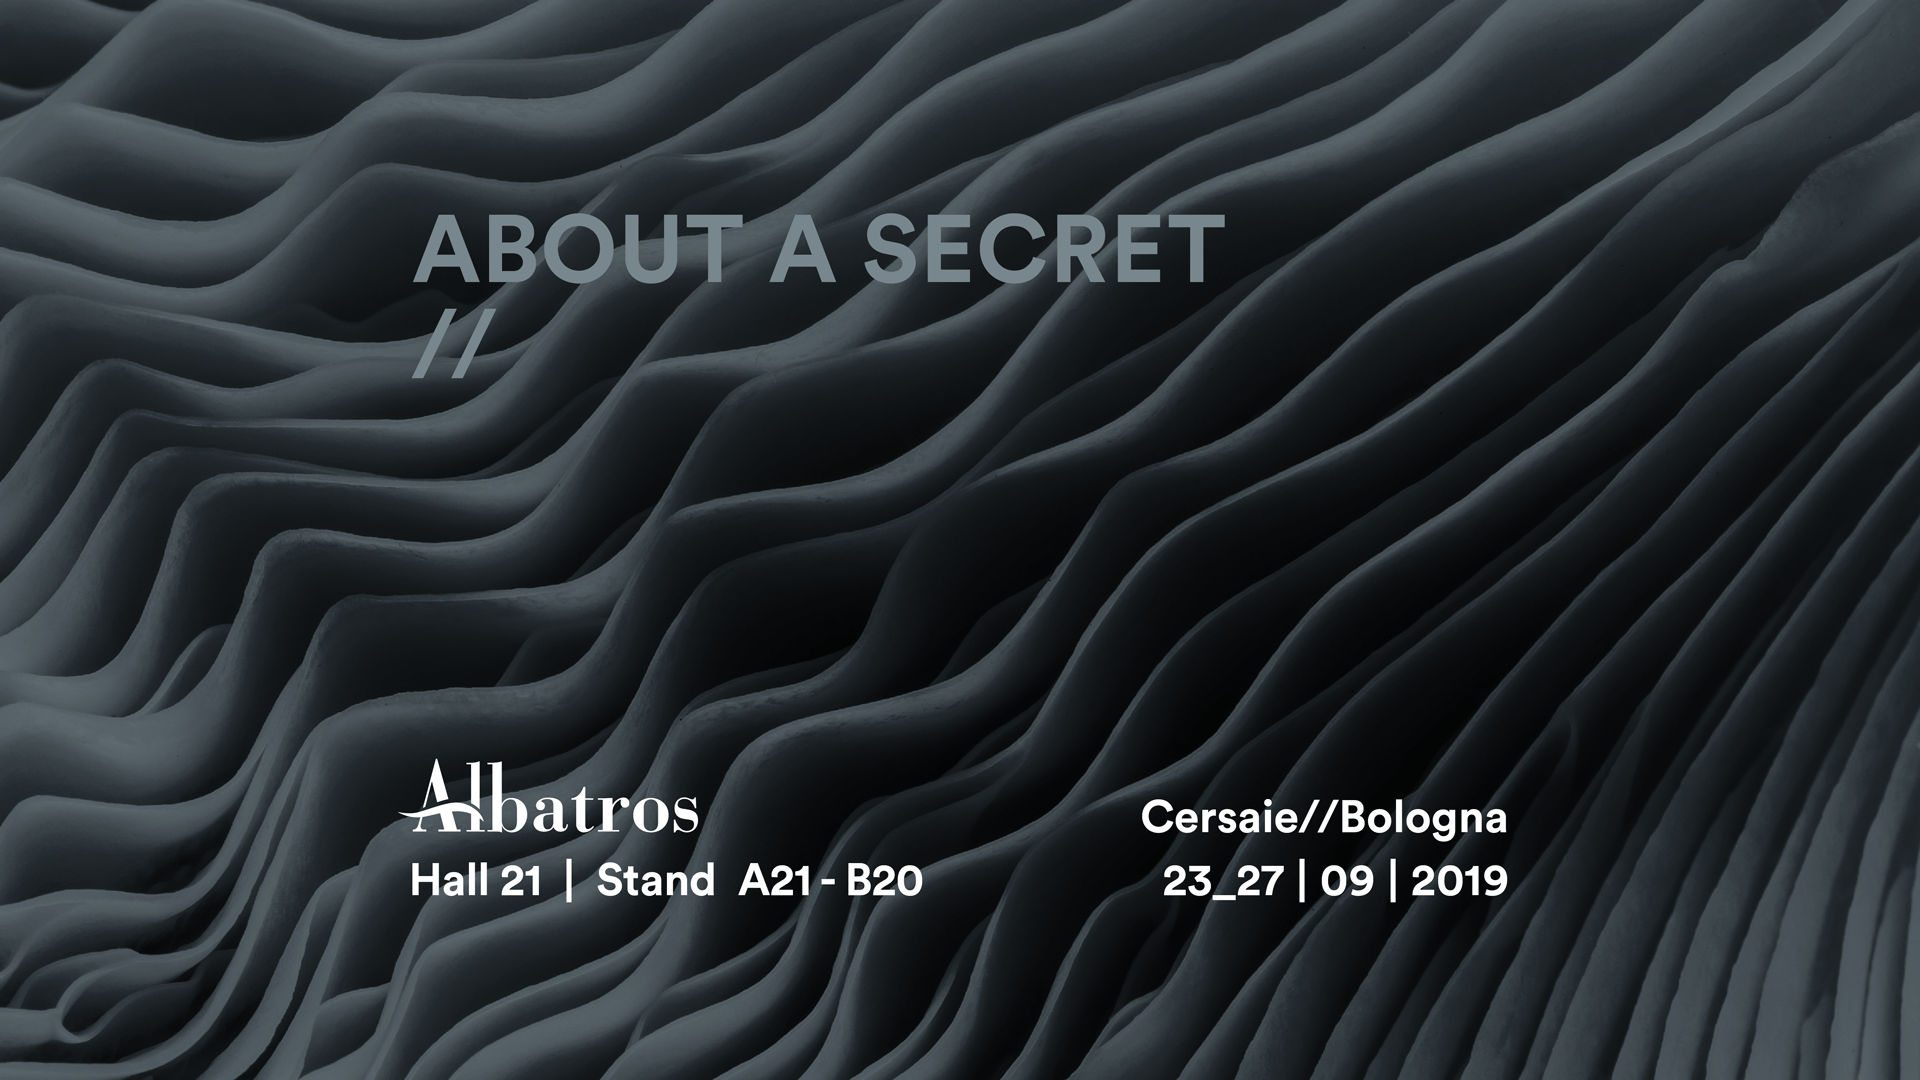 About a secret_Albatros_Cersaie